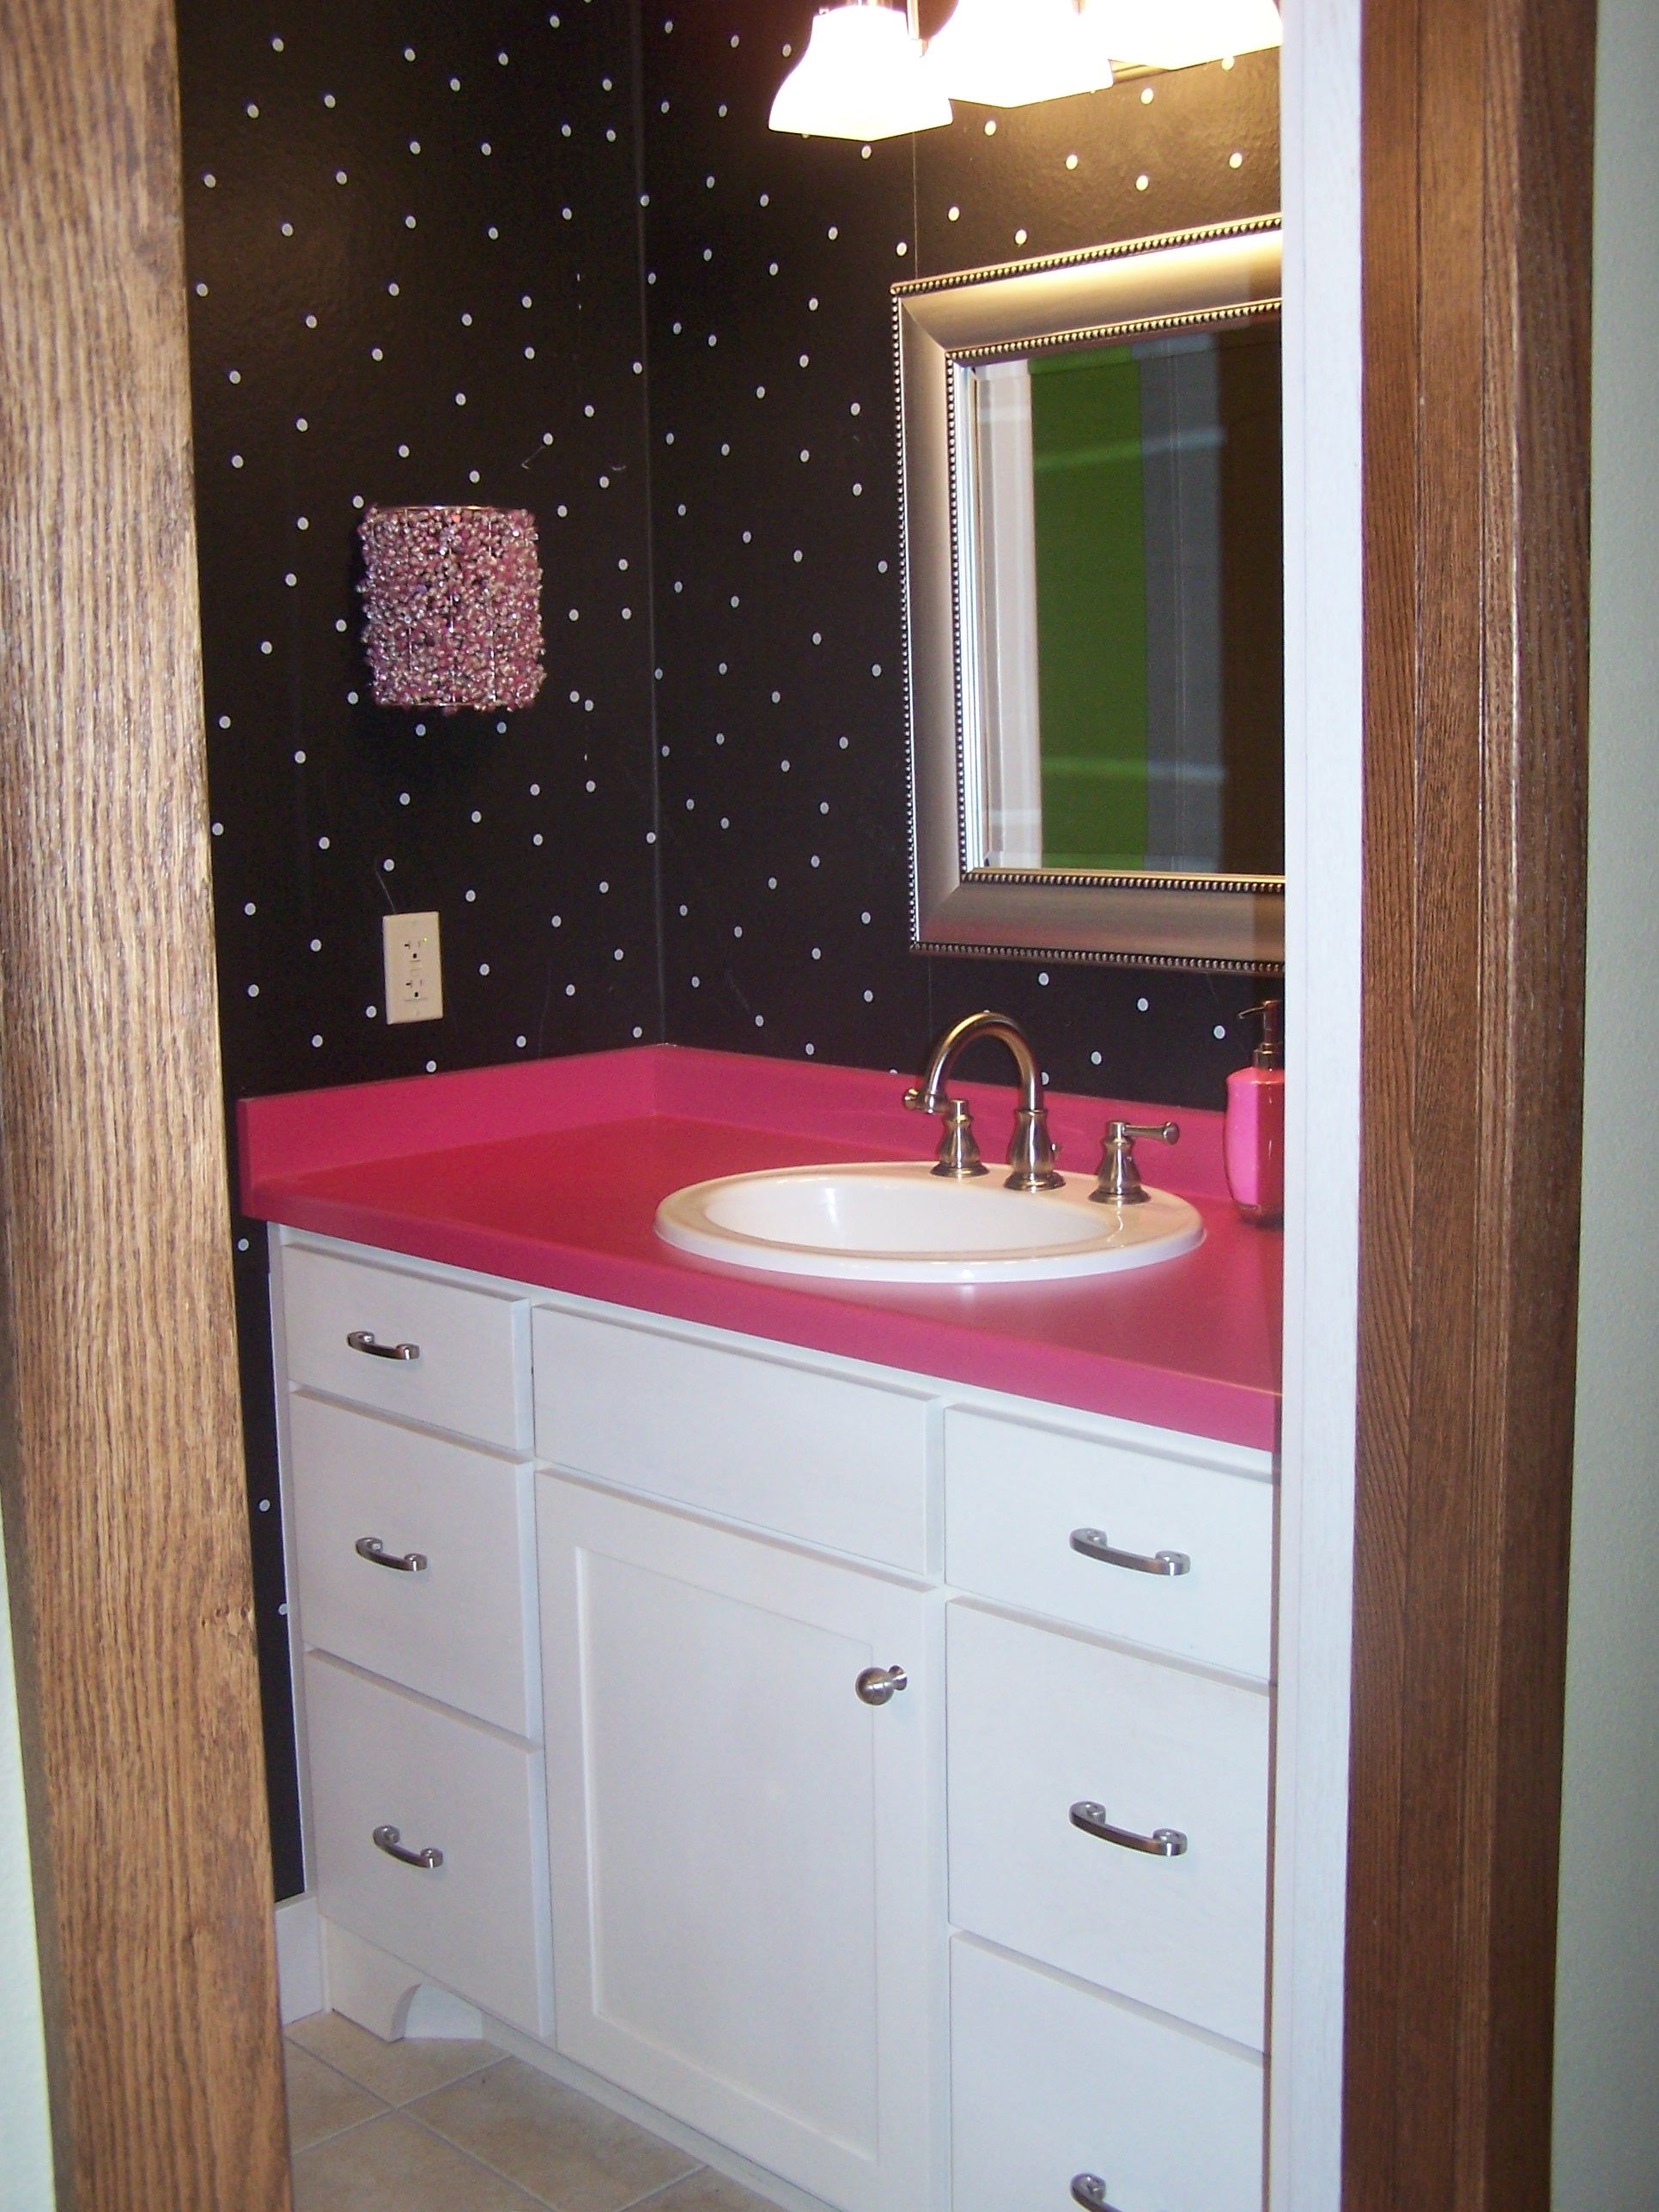 Attractive Girls Bathroom With Hot Pink Laminate Countertops And White Cabinets By  Swita Cabinetry.